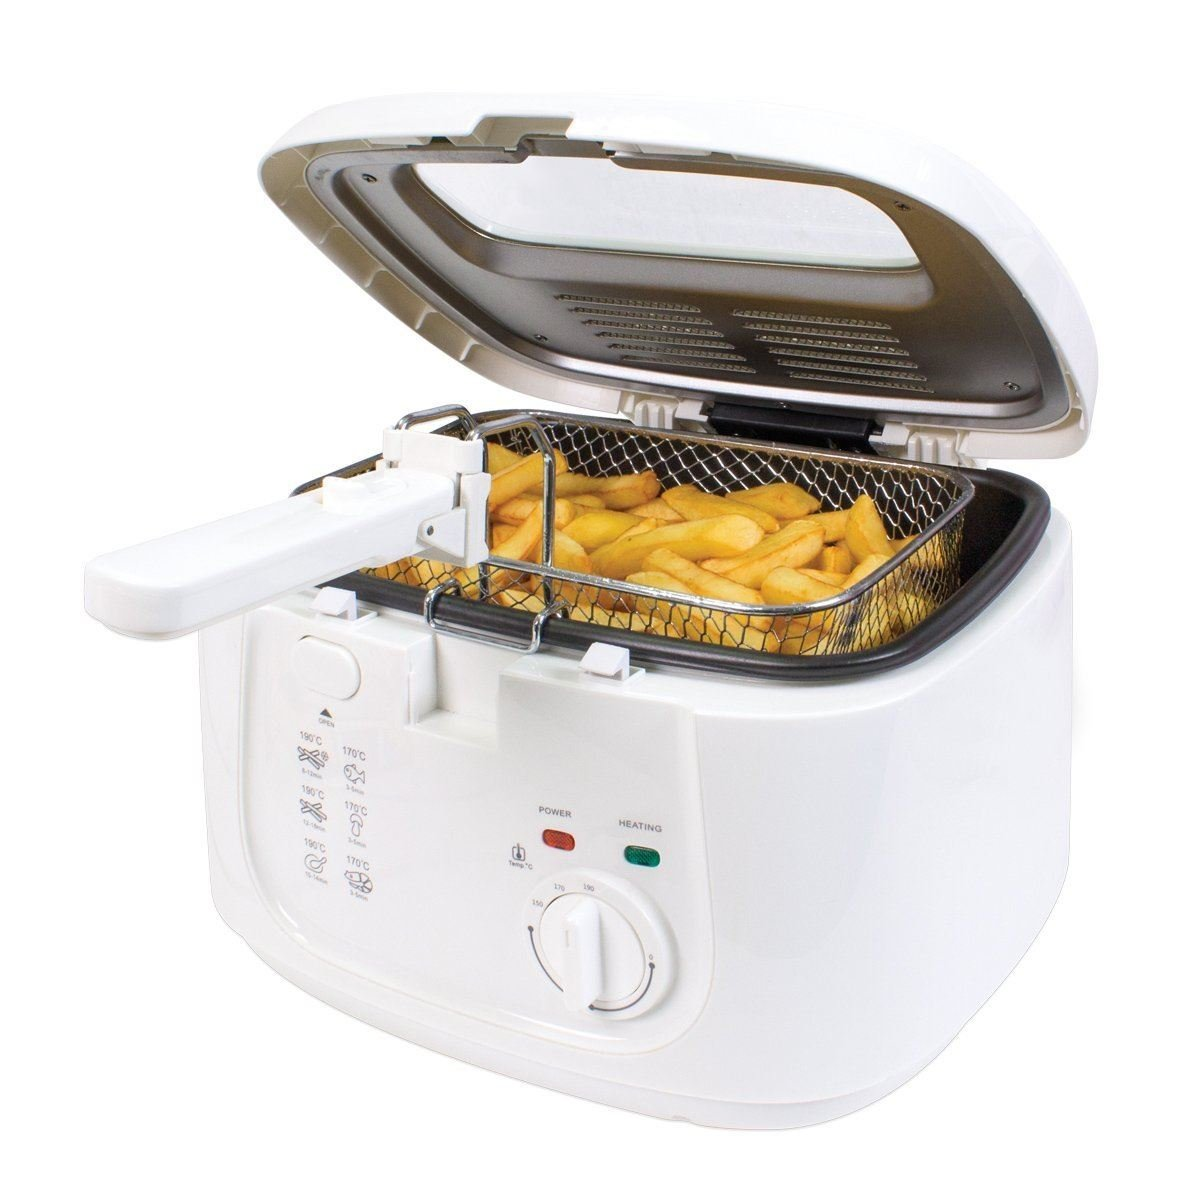 Unibos Removable Observation Window Lid Adjustable Thermostat Cool Touch Deep Fat Fryer 2.5 Litre 1800 W